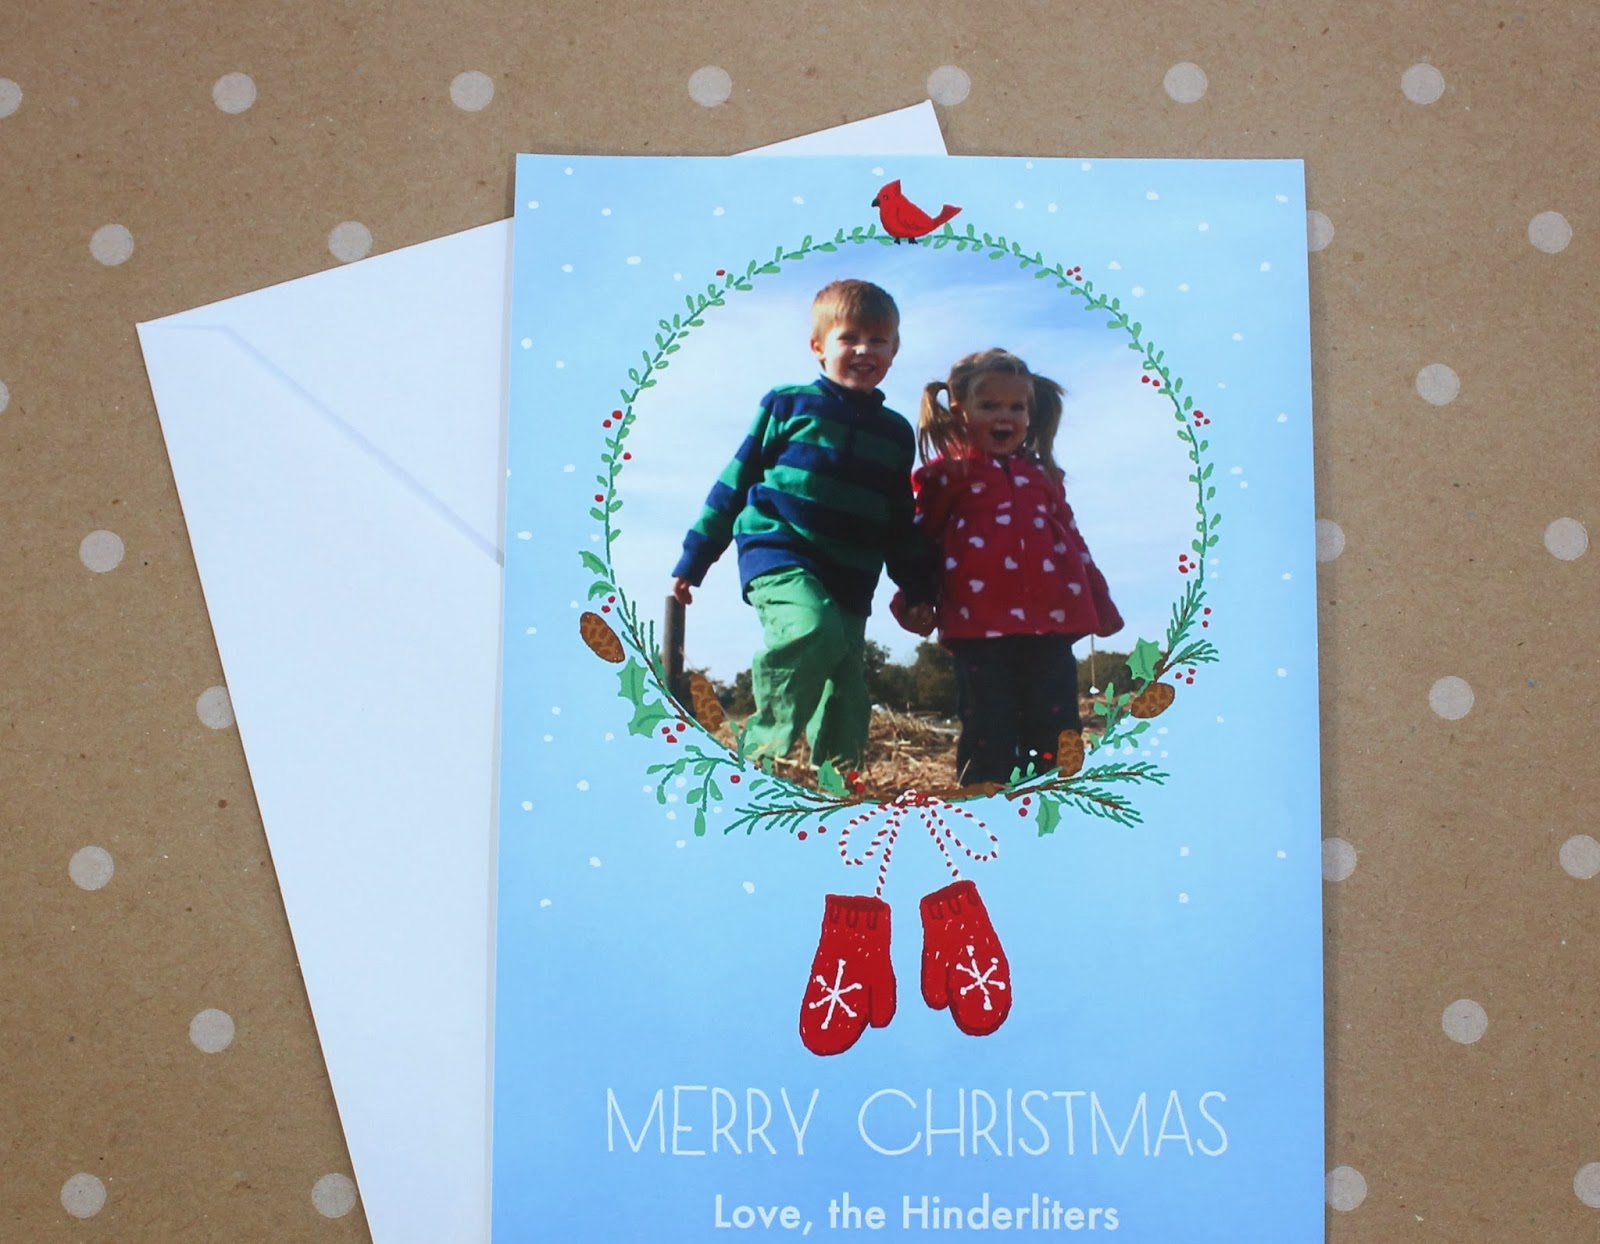 Walgreens Holiday Photo Greeting Cards Images - greetings card ...